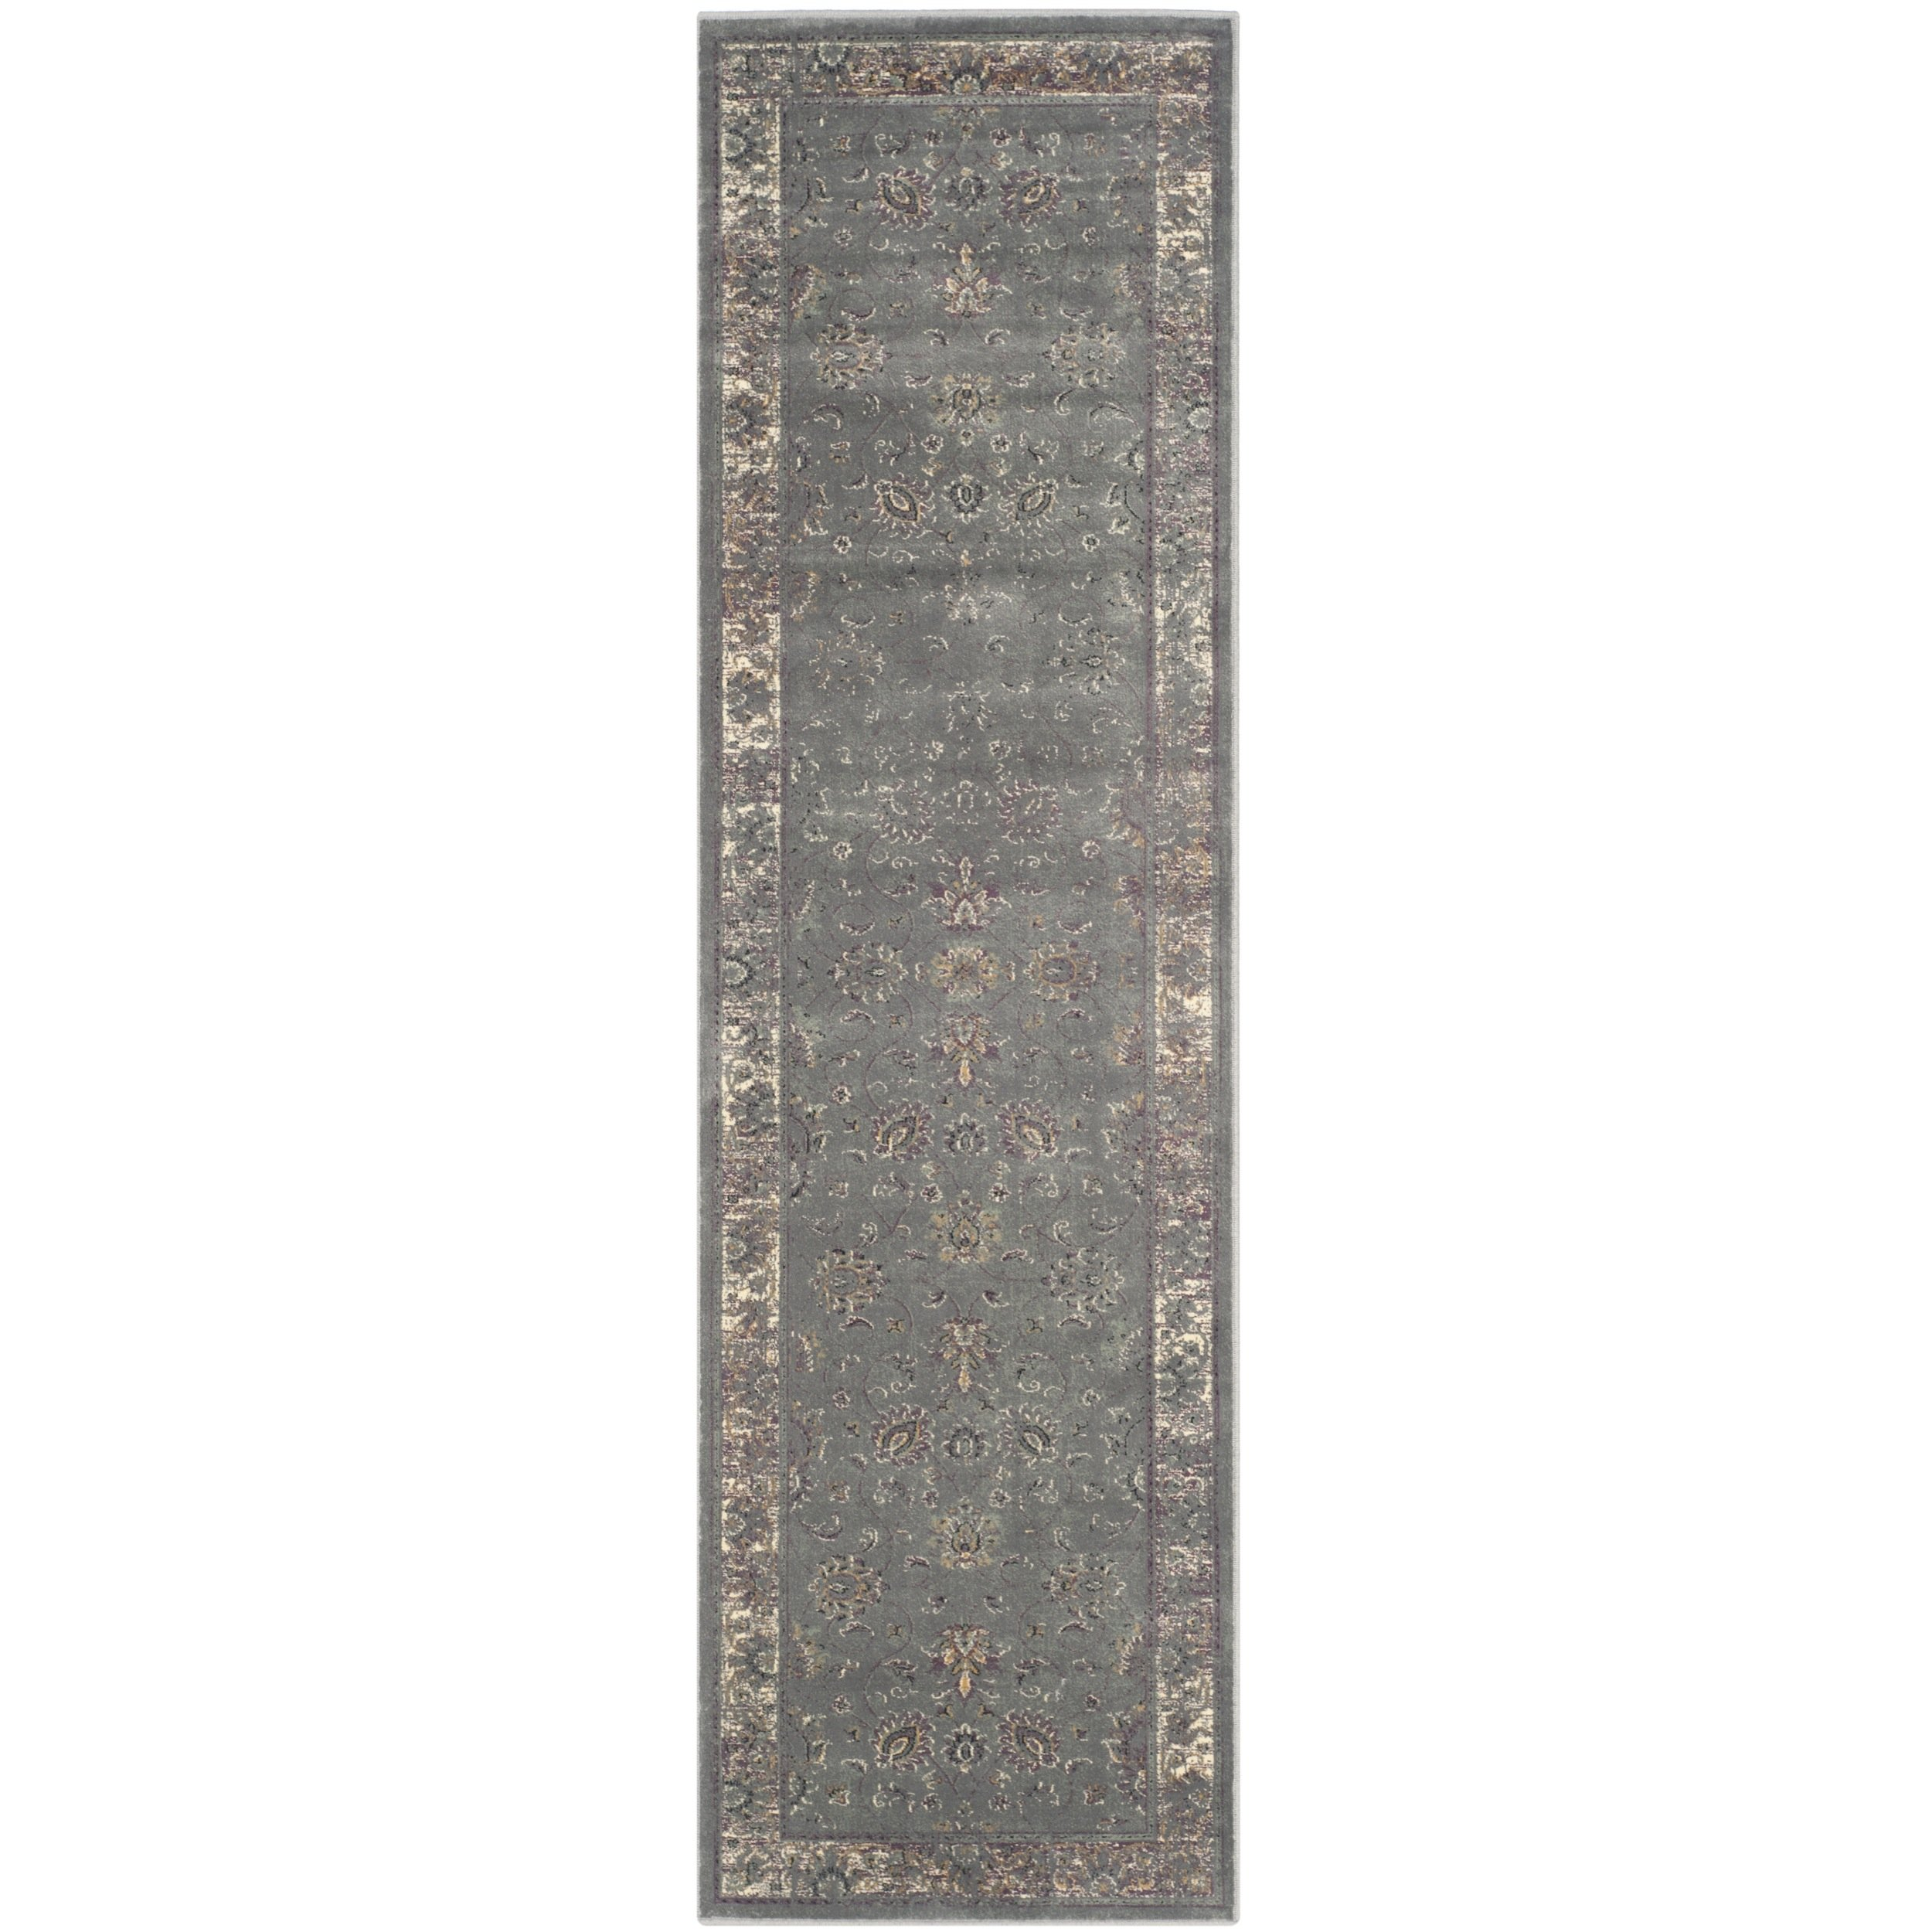 Safavieh Vintage Premium Collection VTG117-2770 Transitional Oriental Grey and Multi Distressed Silky Viscose Runner (2'2'' x 10') by Safavieh